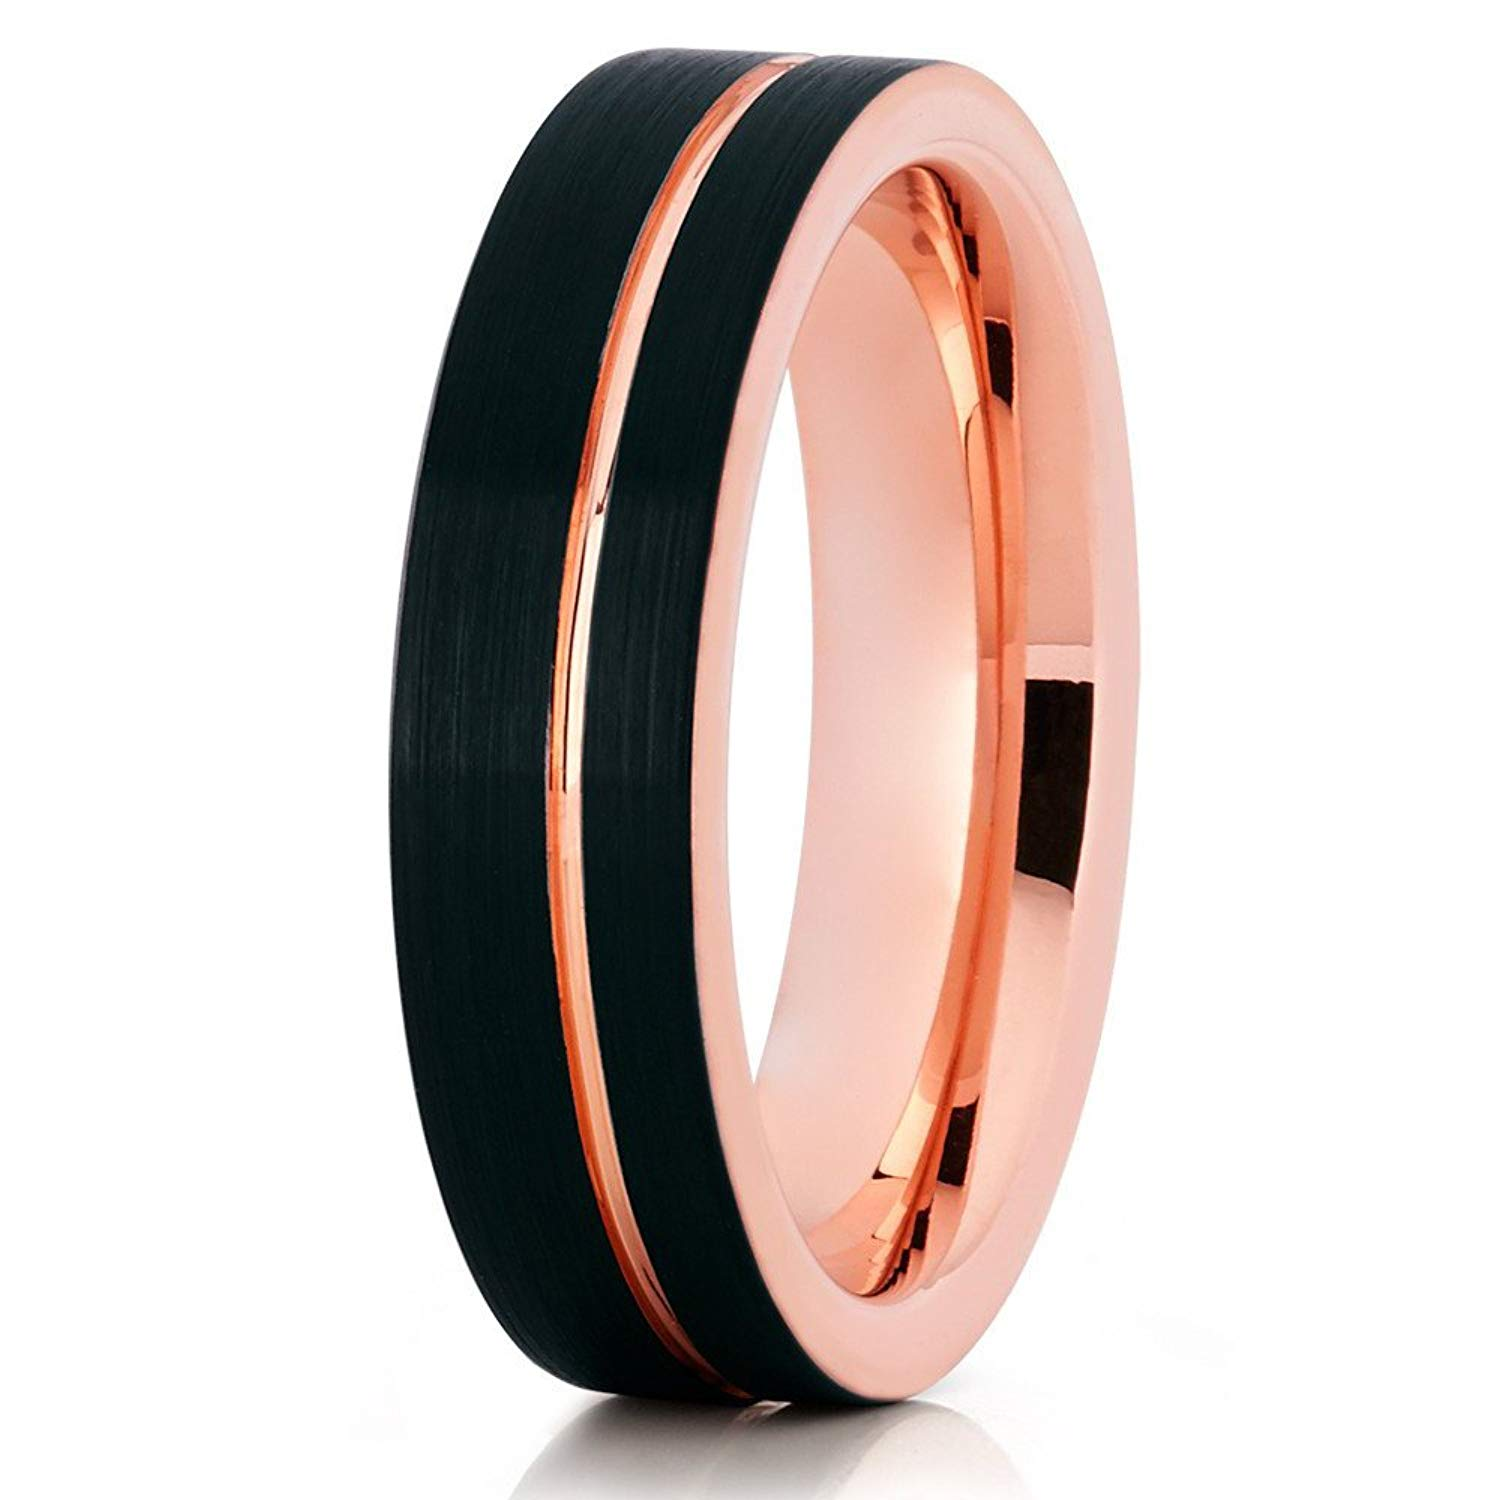 Silly Kings Rose Gold Tungsten Ring,Rose Gold Tungsten Wedding Ring,8mm Black Tungsten Ring,Men /& Women,Engagement Ring 18k Rose Gold